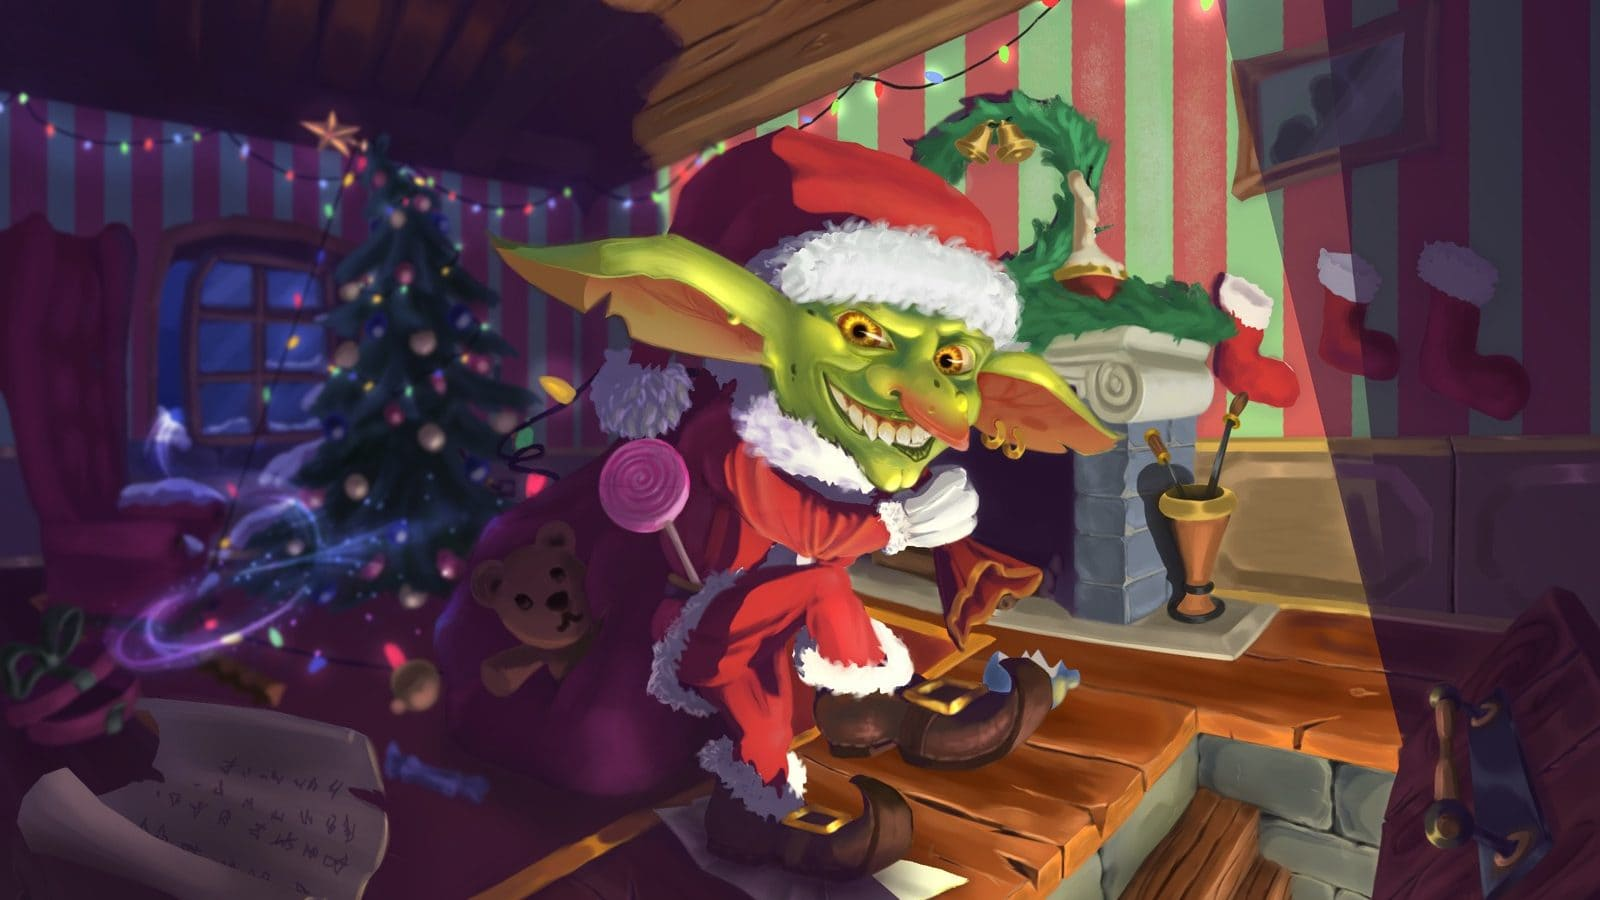 Why Does the Grinch Hate Christmas?